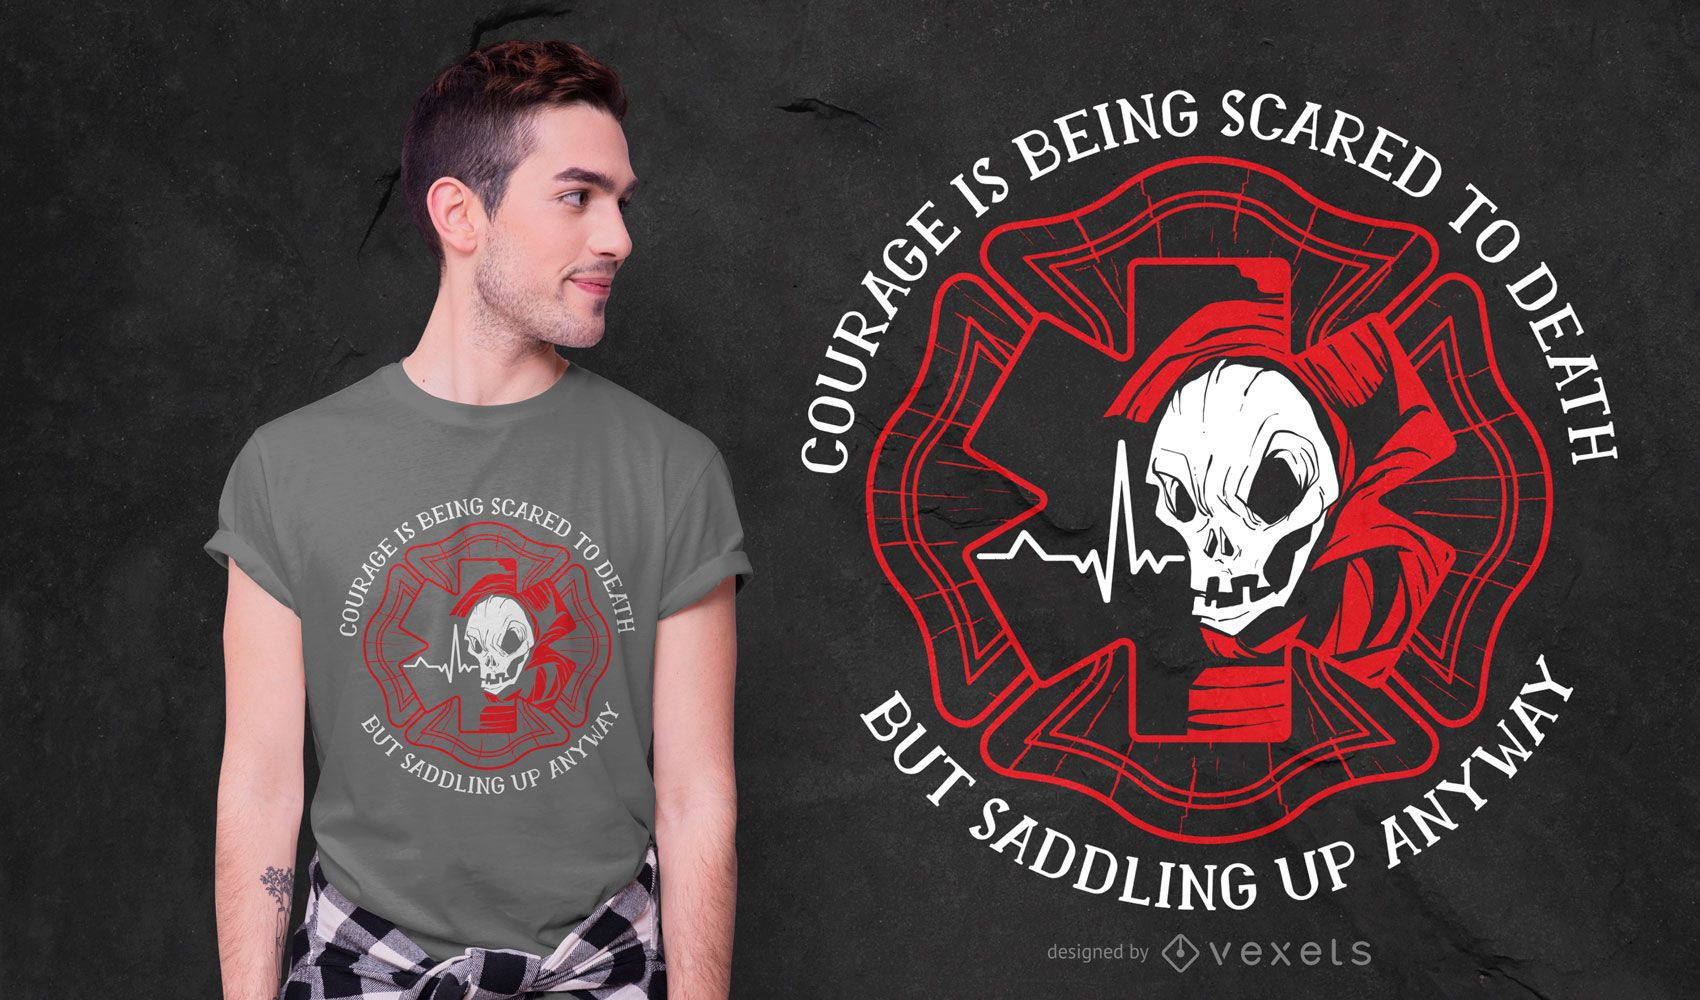 Firefighter quote t-shirt design